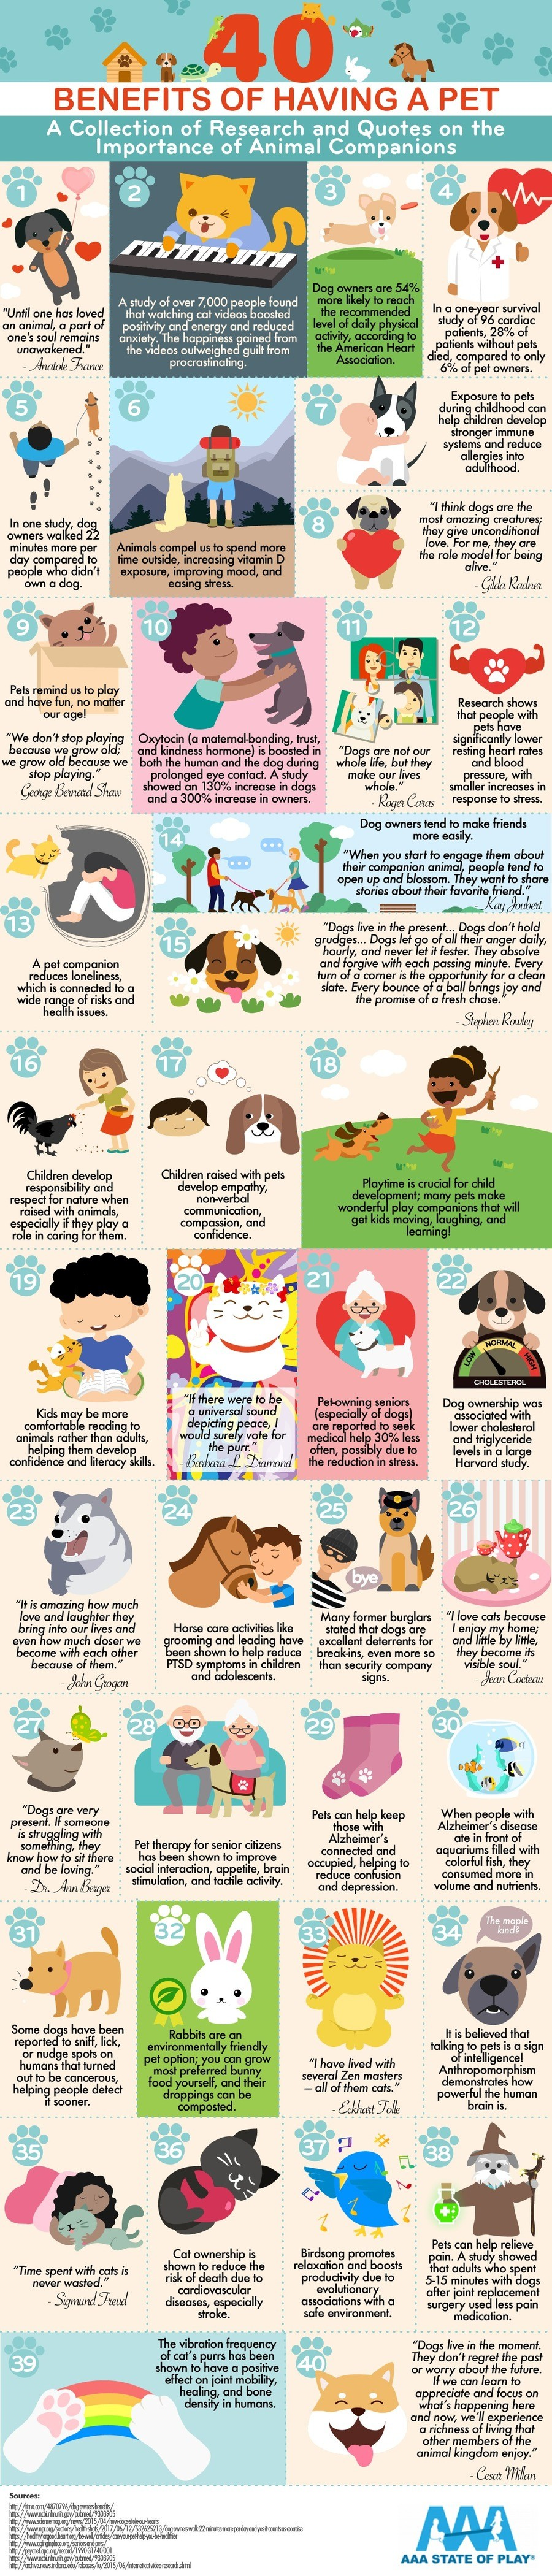 40 Benefits of Having a Pet. Pets rule. Found at: https://www.aaastateofplay.com/40-benefits-of-having-a-pet/.. I too would probably run along to the next house if a fully erect, police doggofficer stood guard.